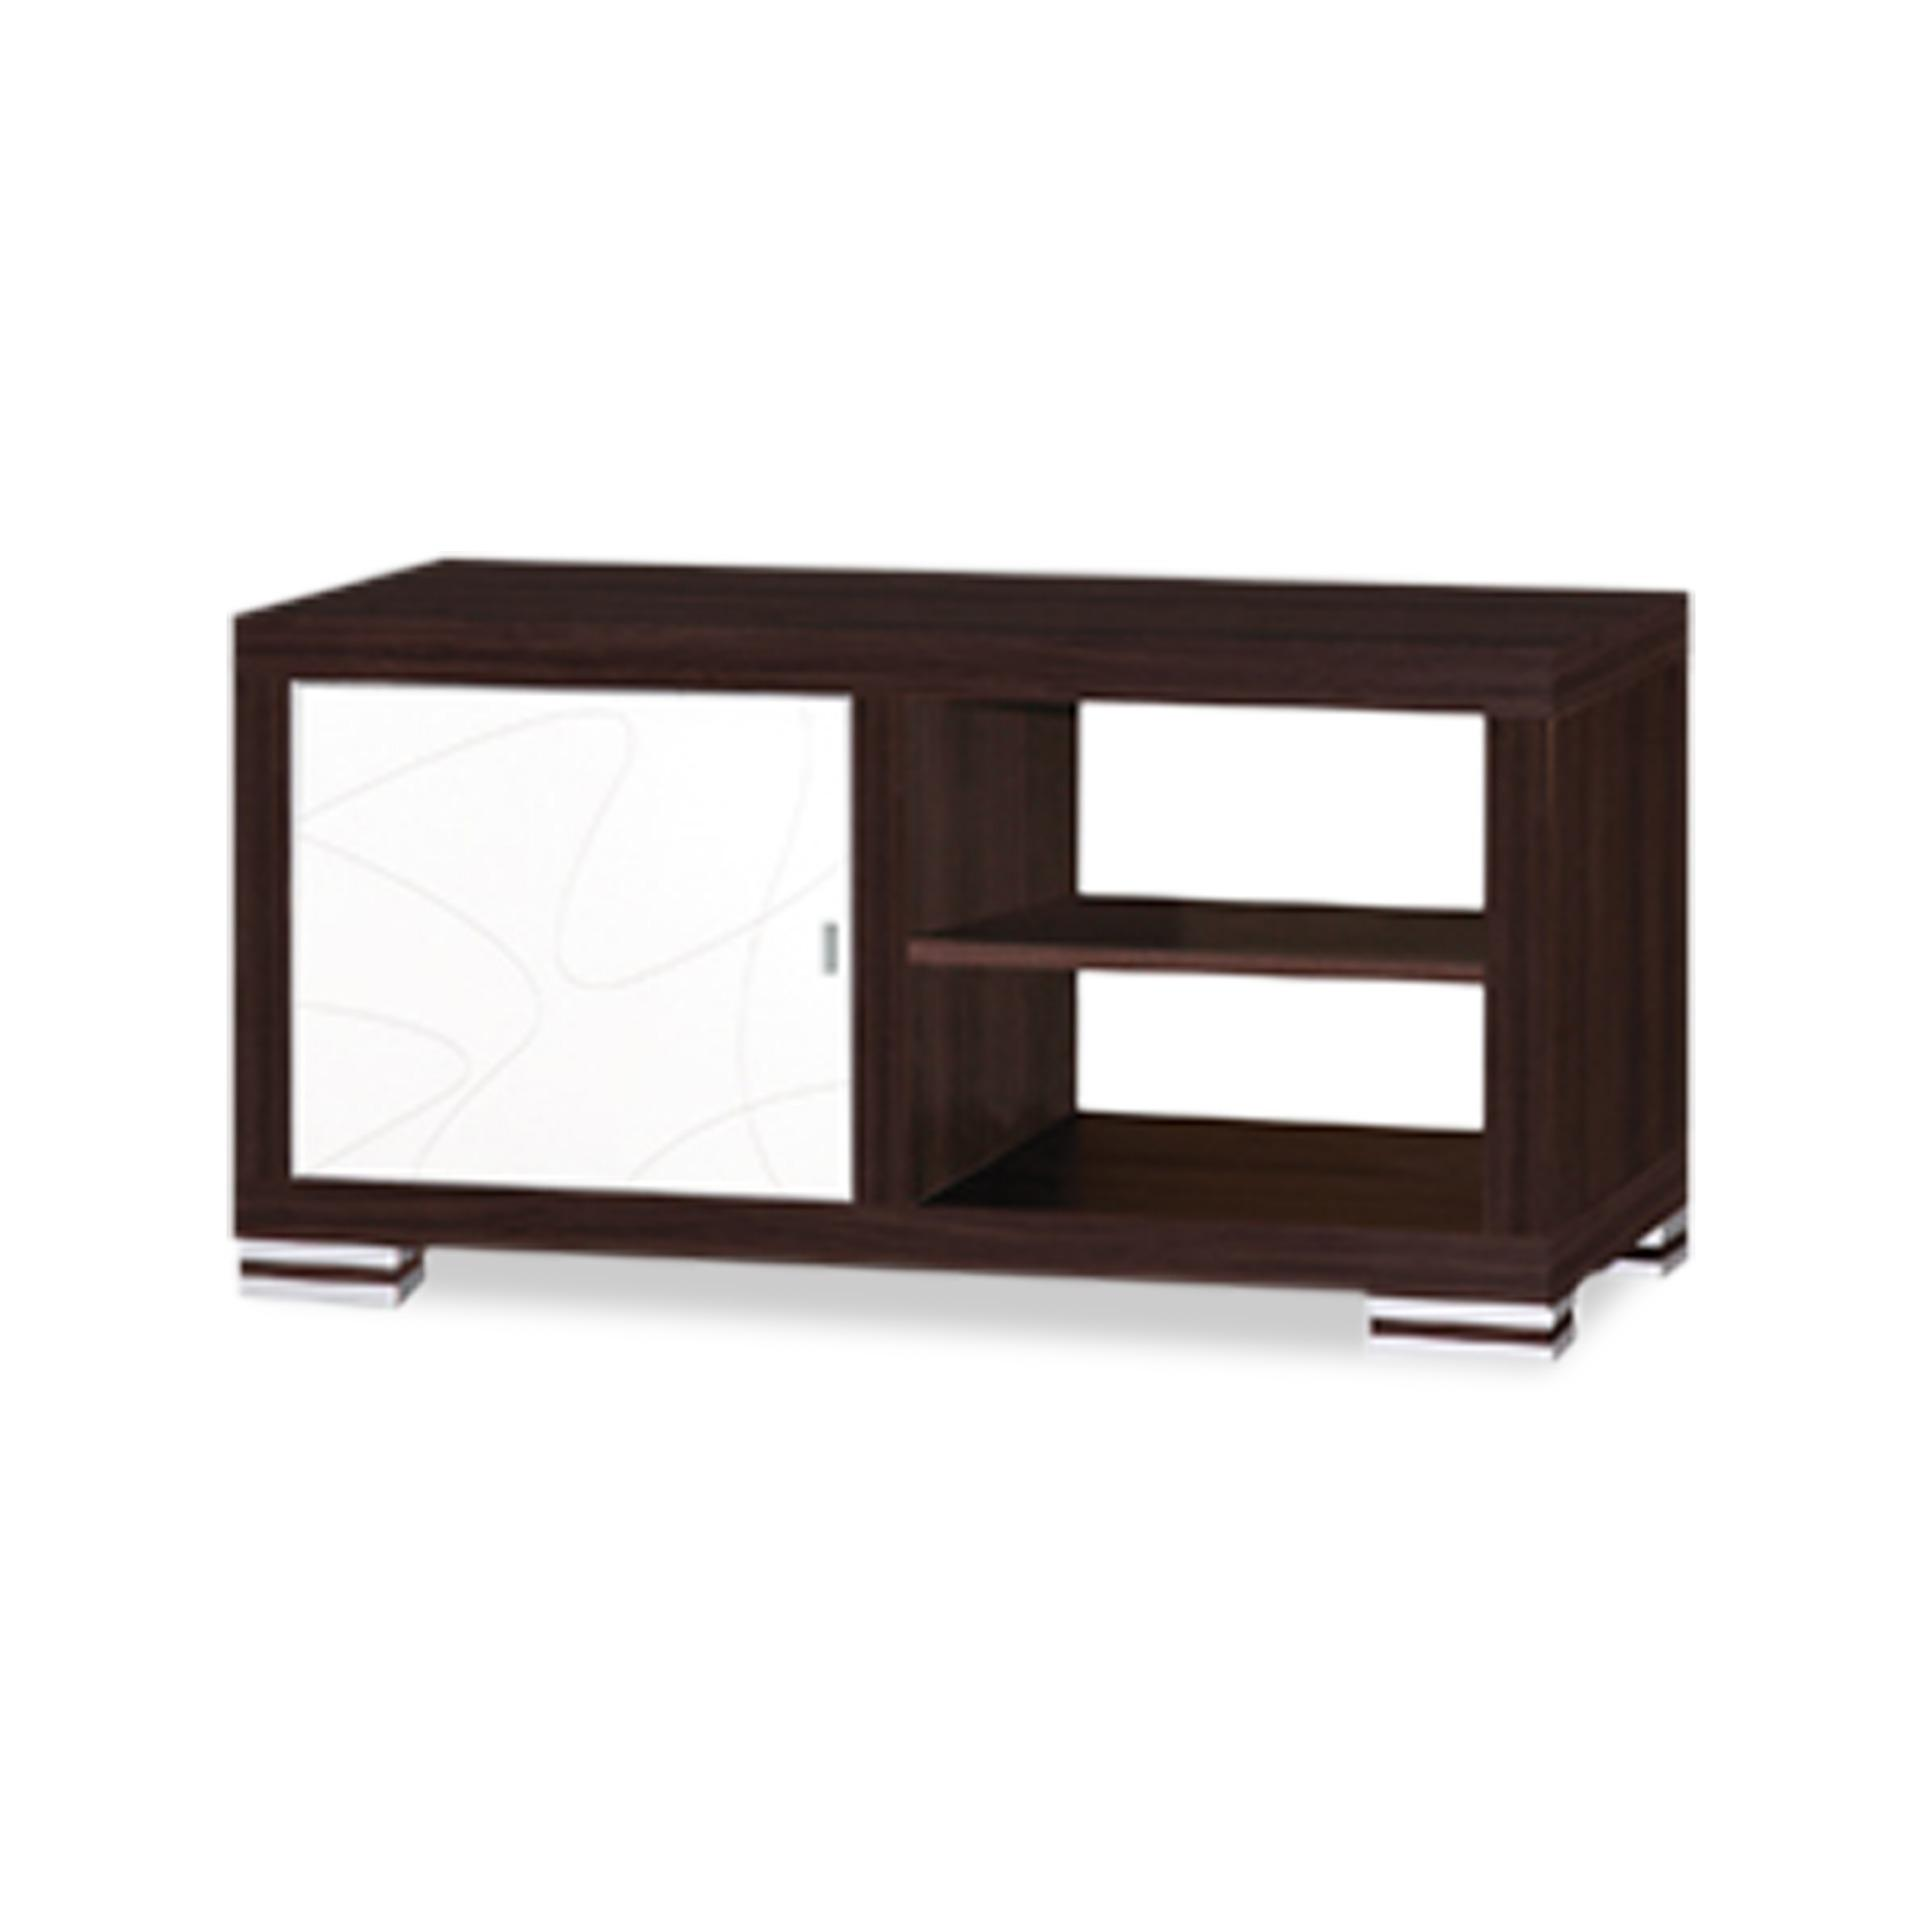 Benoit 1 Door TV Cabinet 1.1m (FREE DELIVERY)(FREE ASSEMBLY)